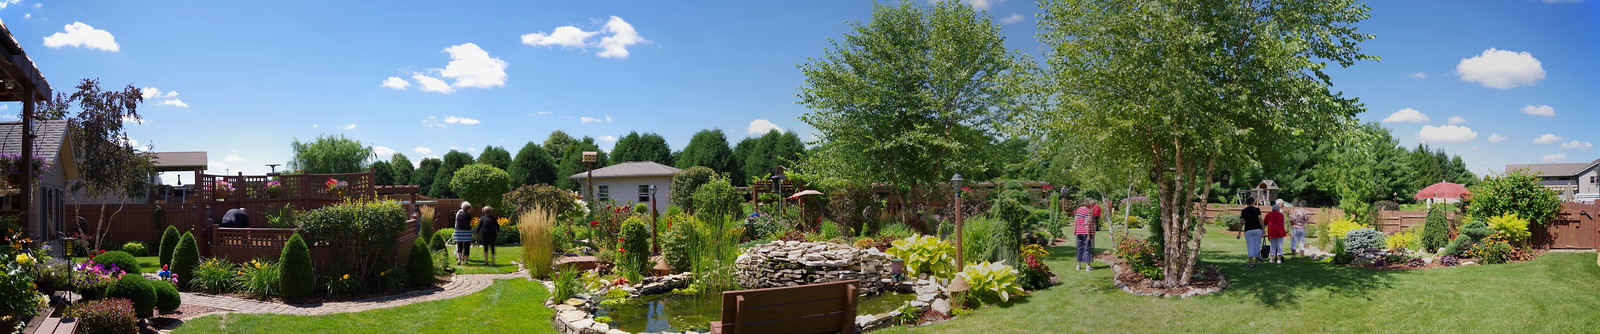 You need panorama vision for this garden